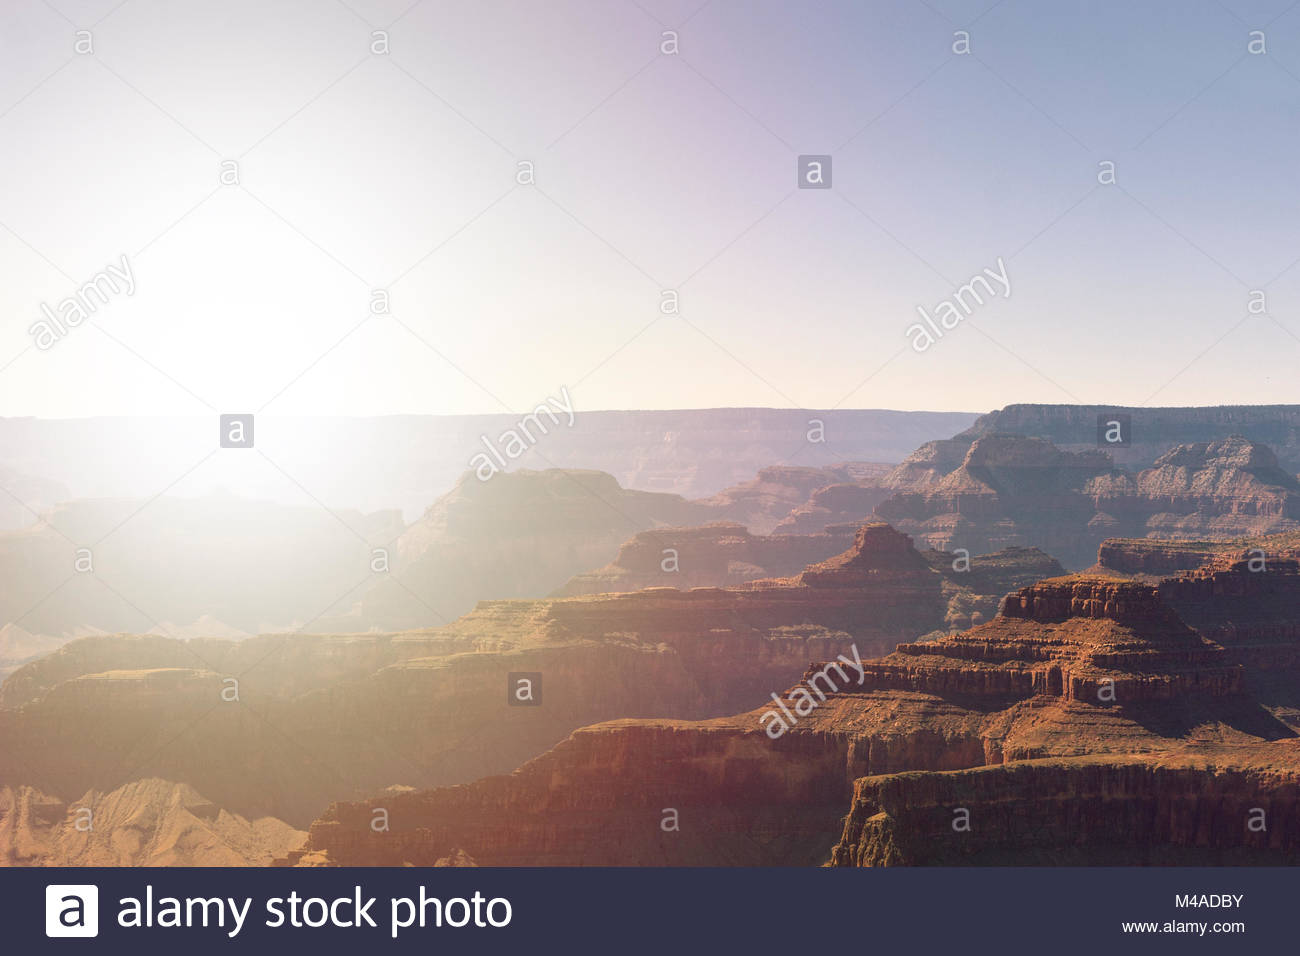 grand-canyon-grand-canyon-national-park-arizona-usa-M4ADBY.jpg